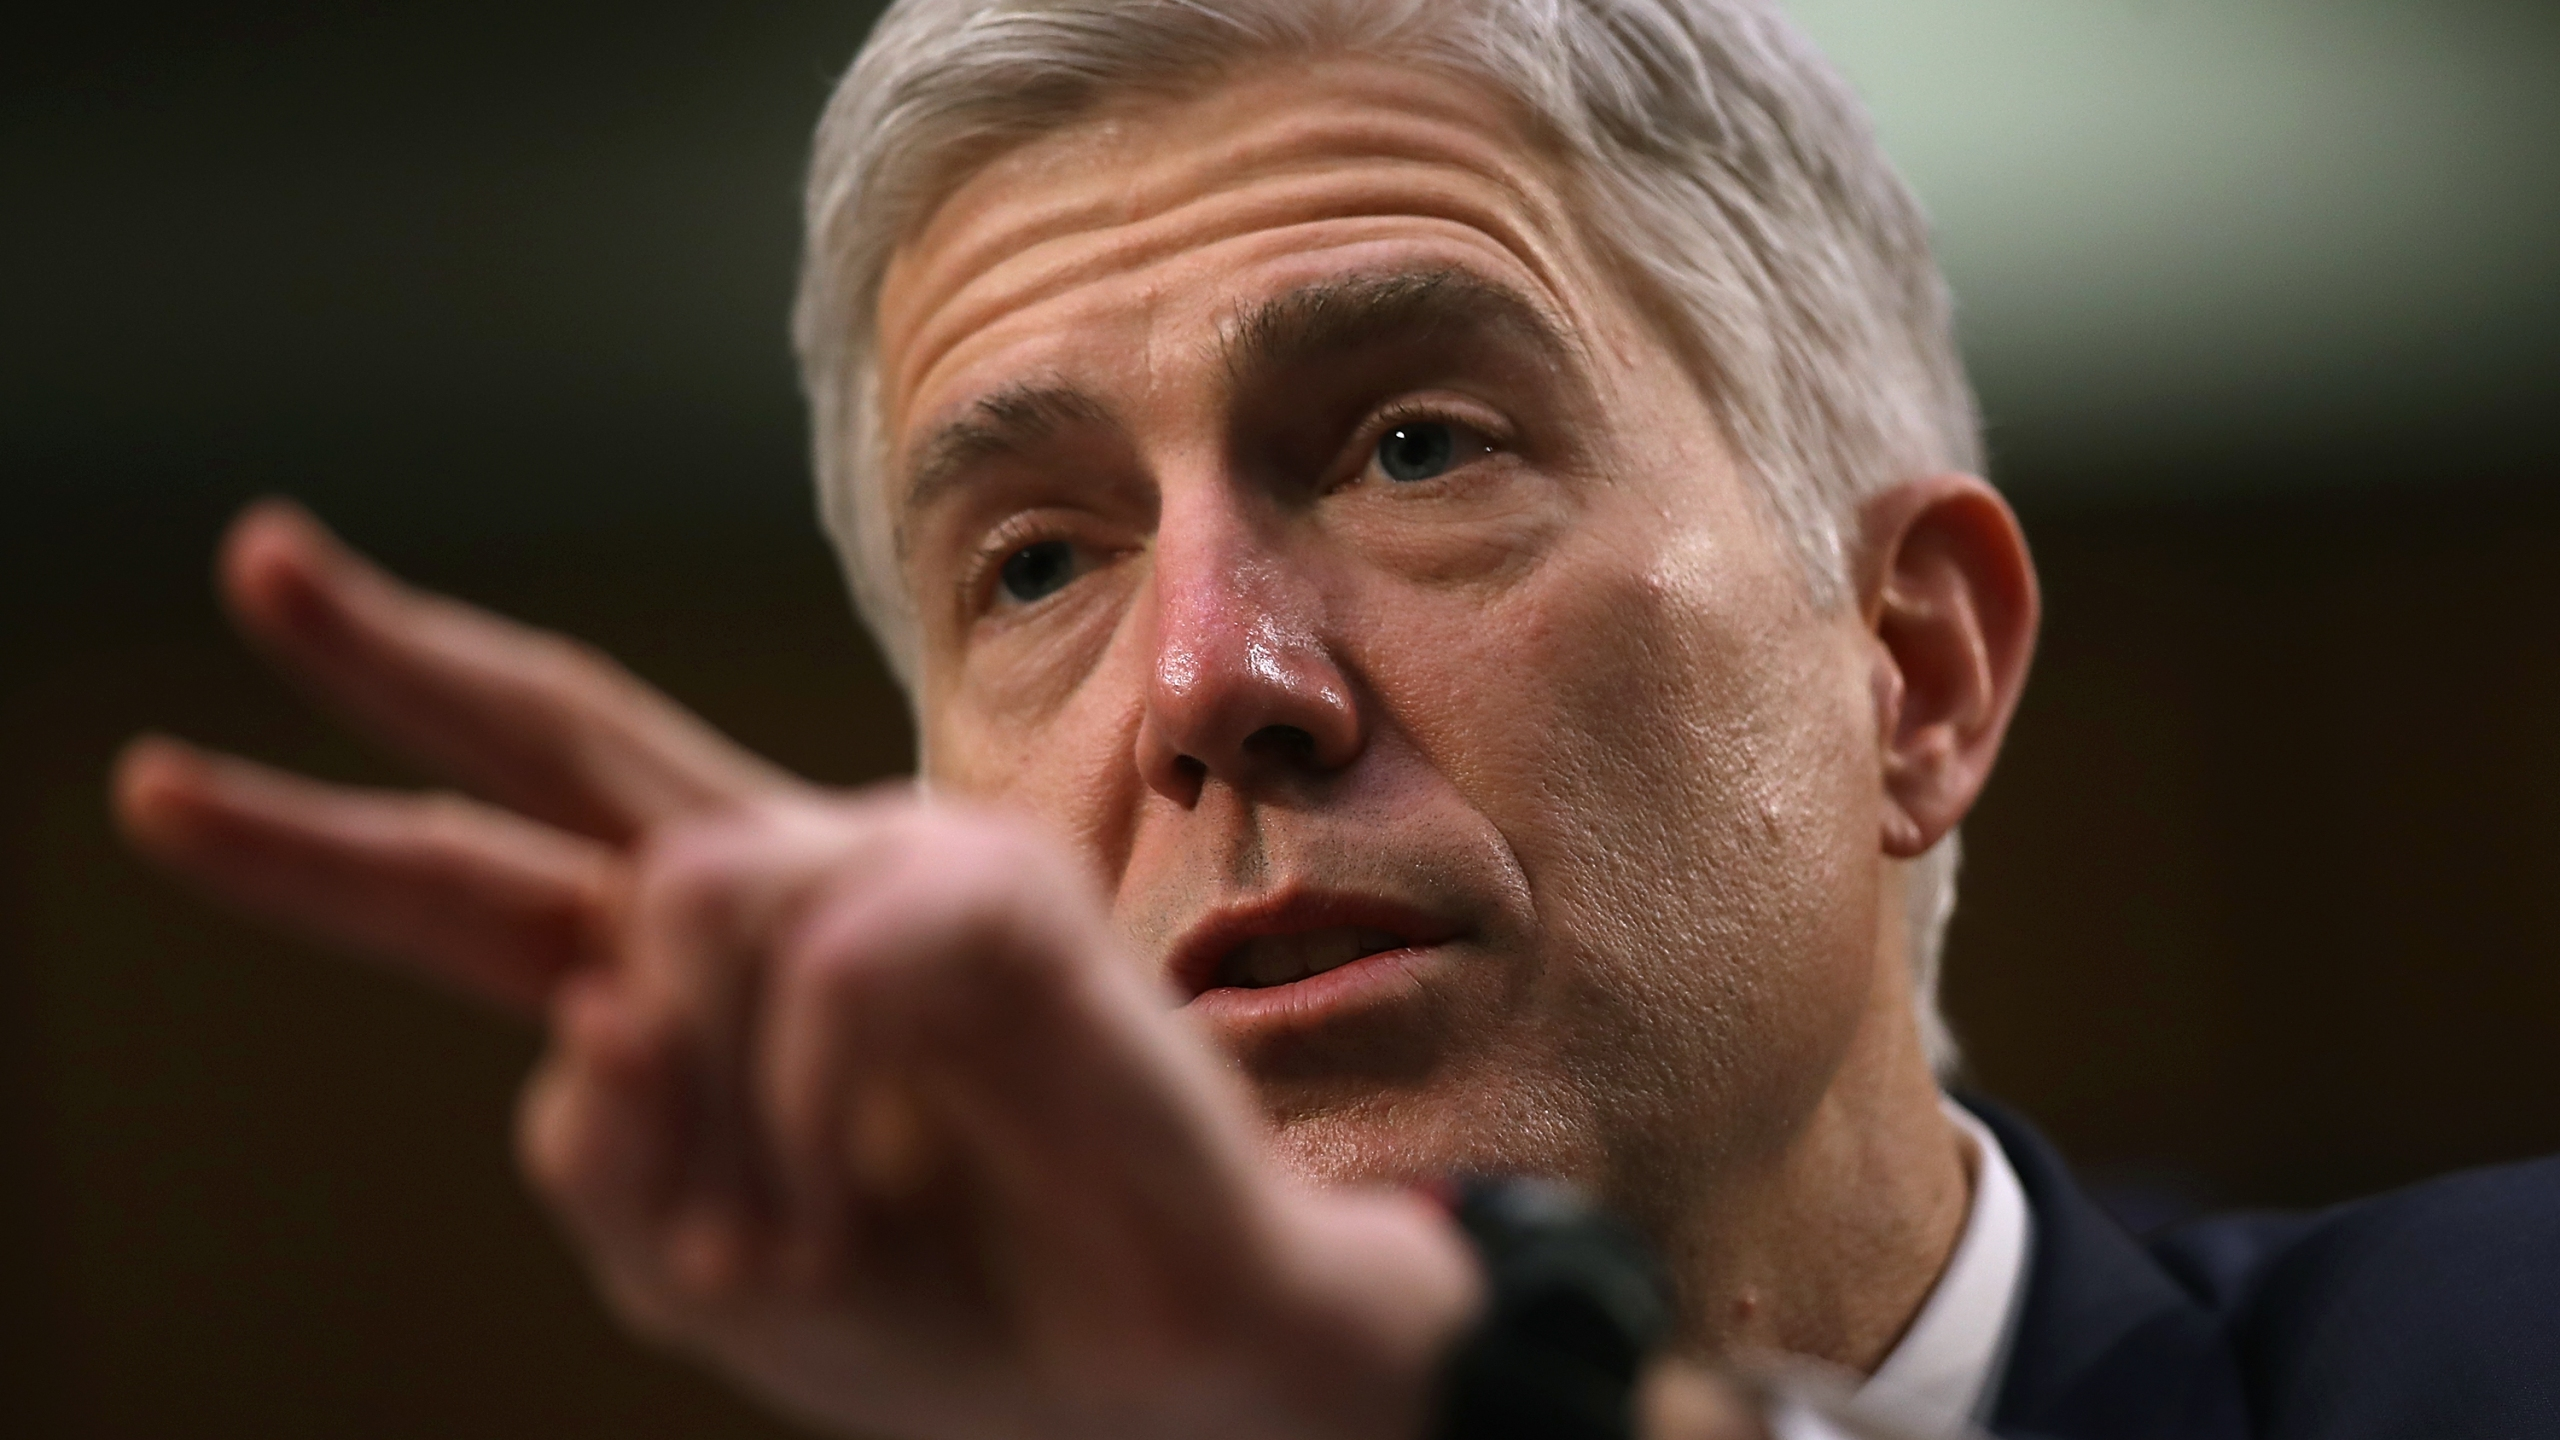 Judge Neil Gorsuch testifies during the third day of his Supreme Court confirmation hearing before the Senate Judiciary Committee in the Hart Senate Office Building on Capitol Hill, March 22, 2017 in Washington. (Credit: Justin Sullivan/Getty Images)